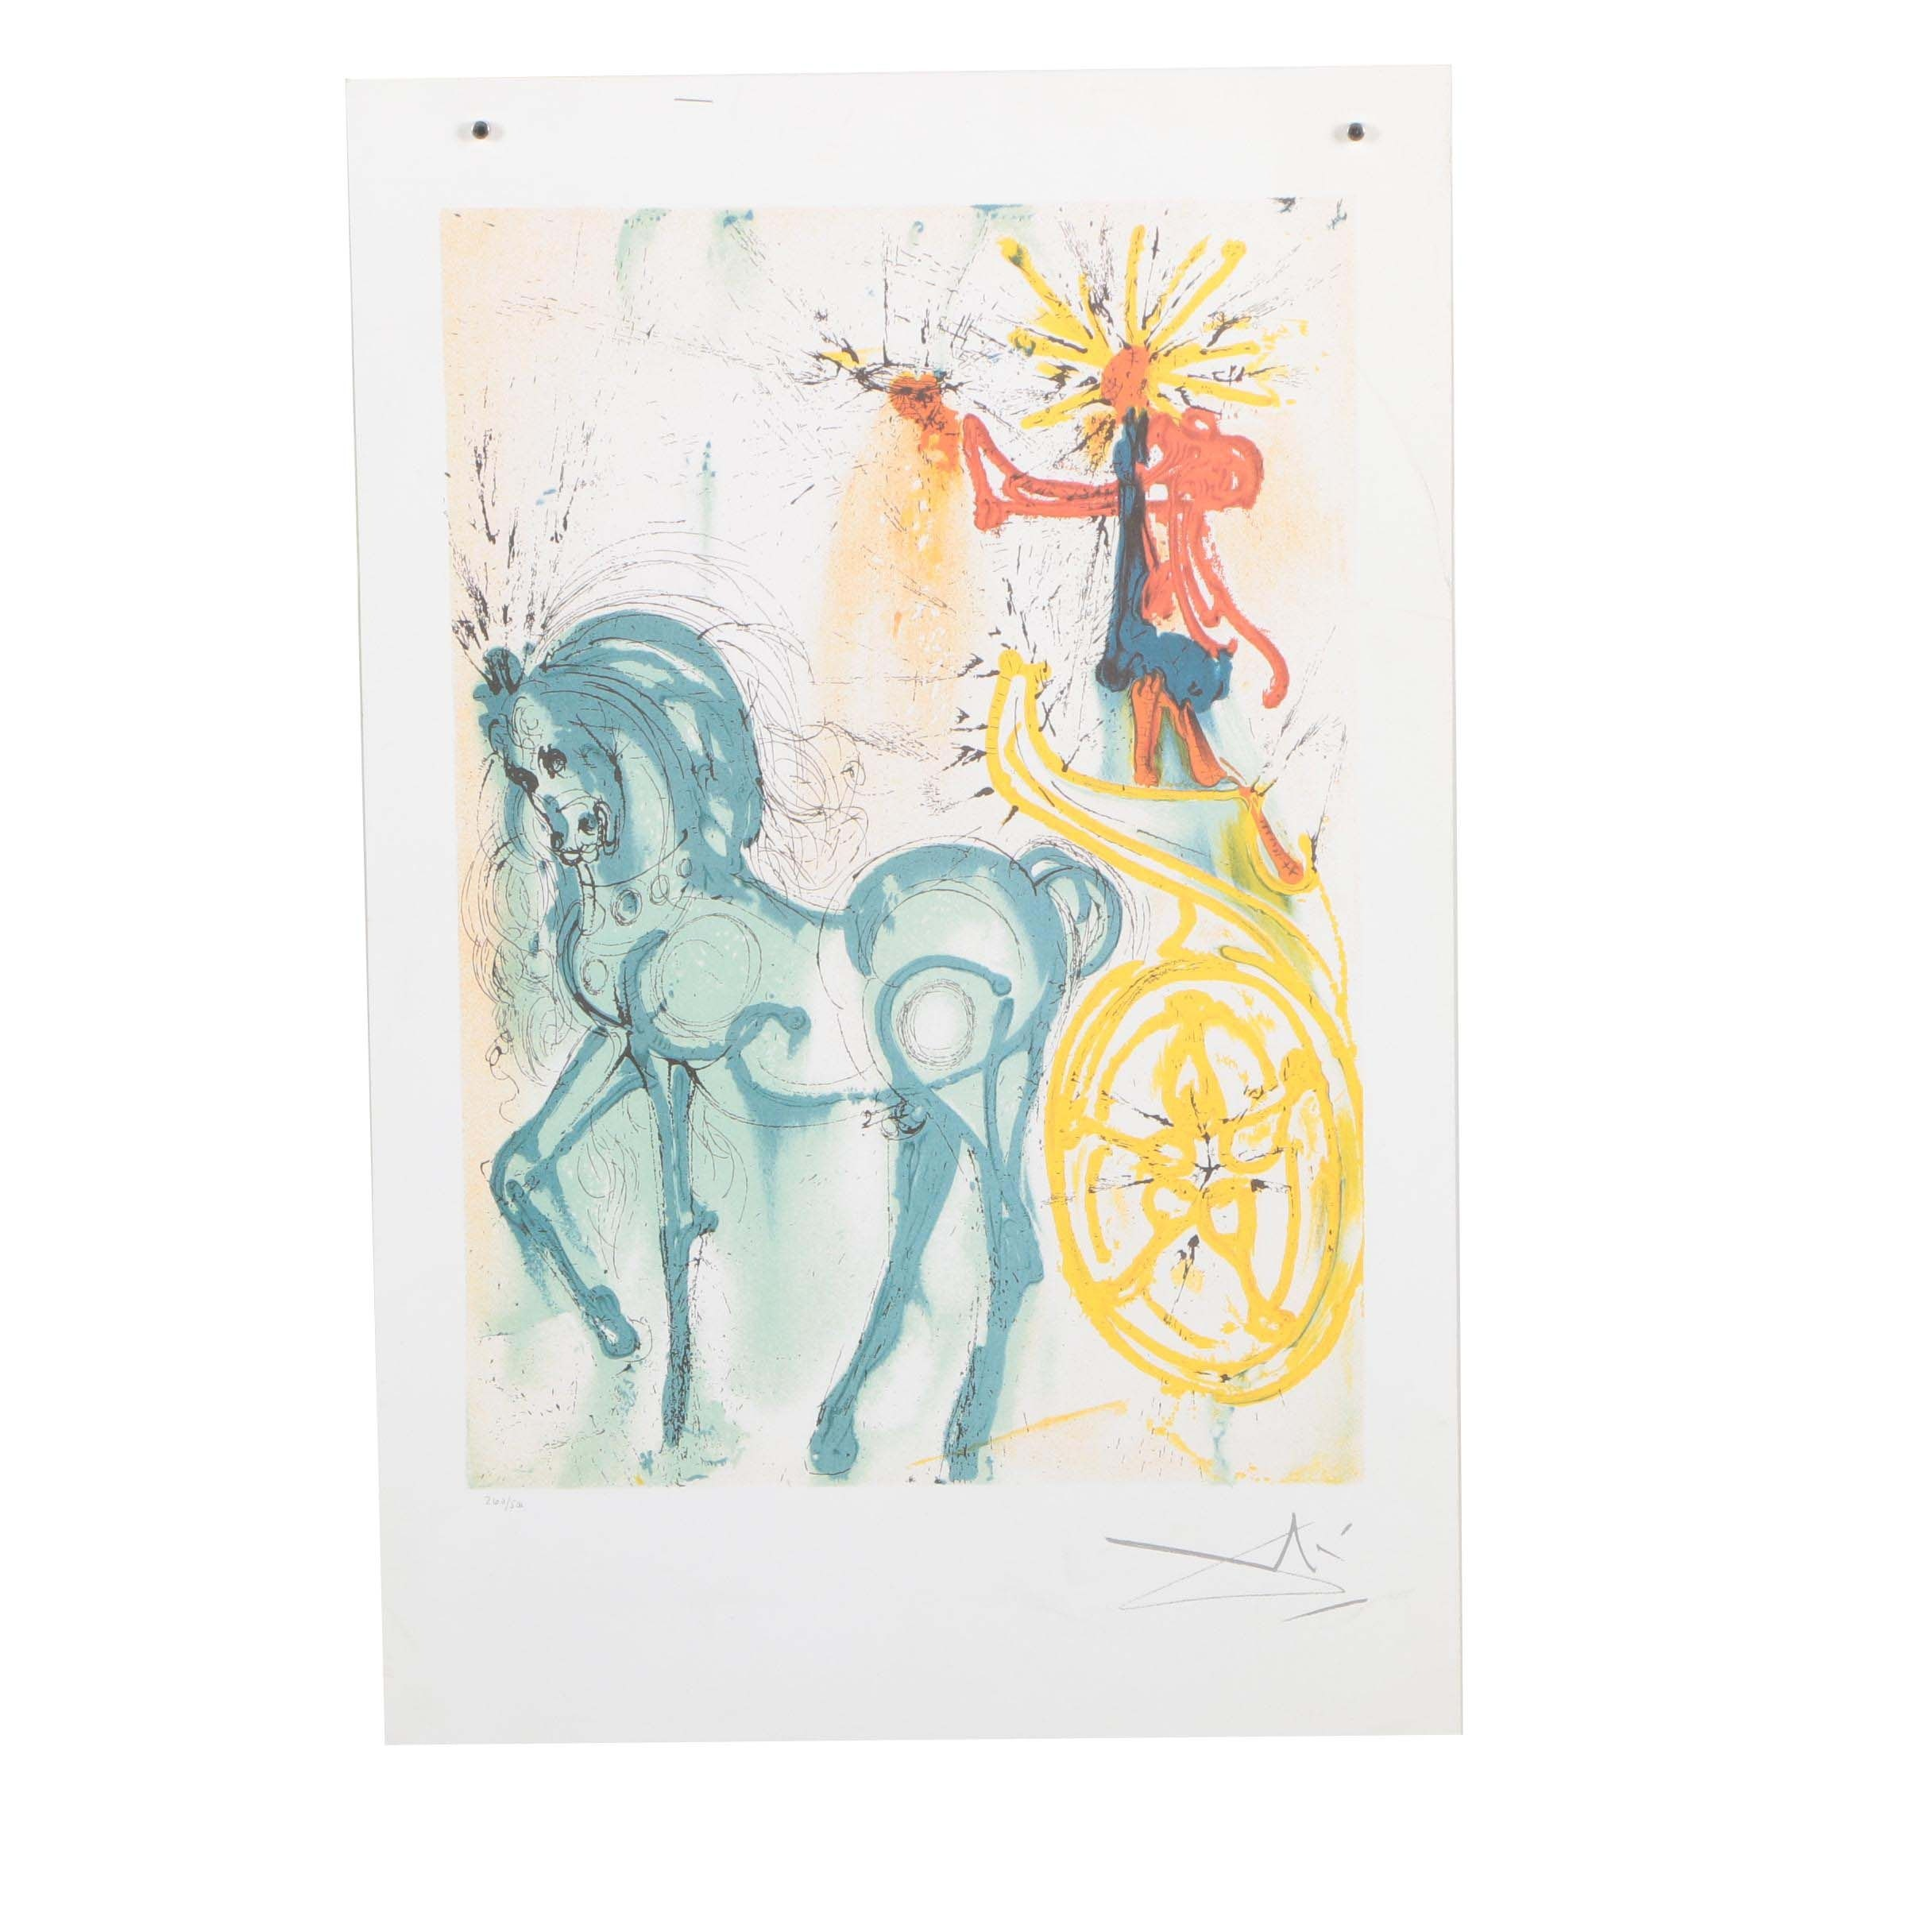 "Limited Edition Offset Lithograph after Salvador Dalí ""Le Cheval de Triomphe"""